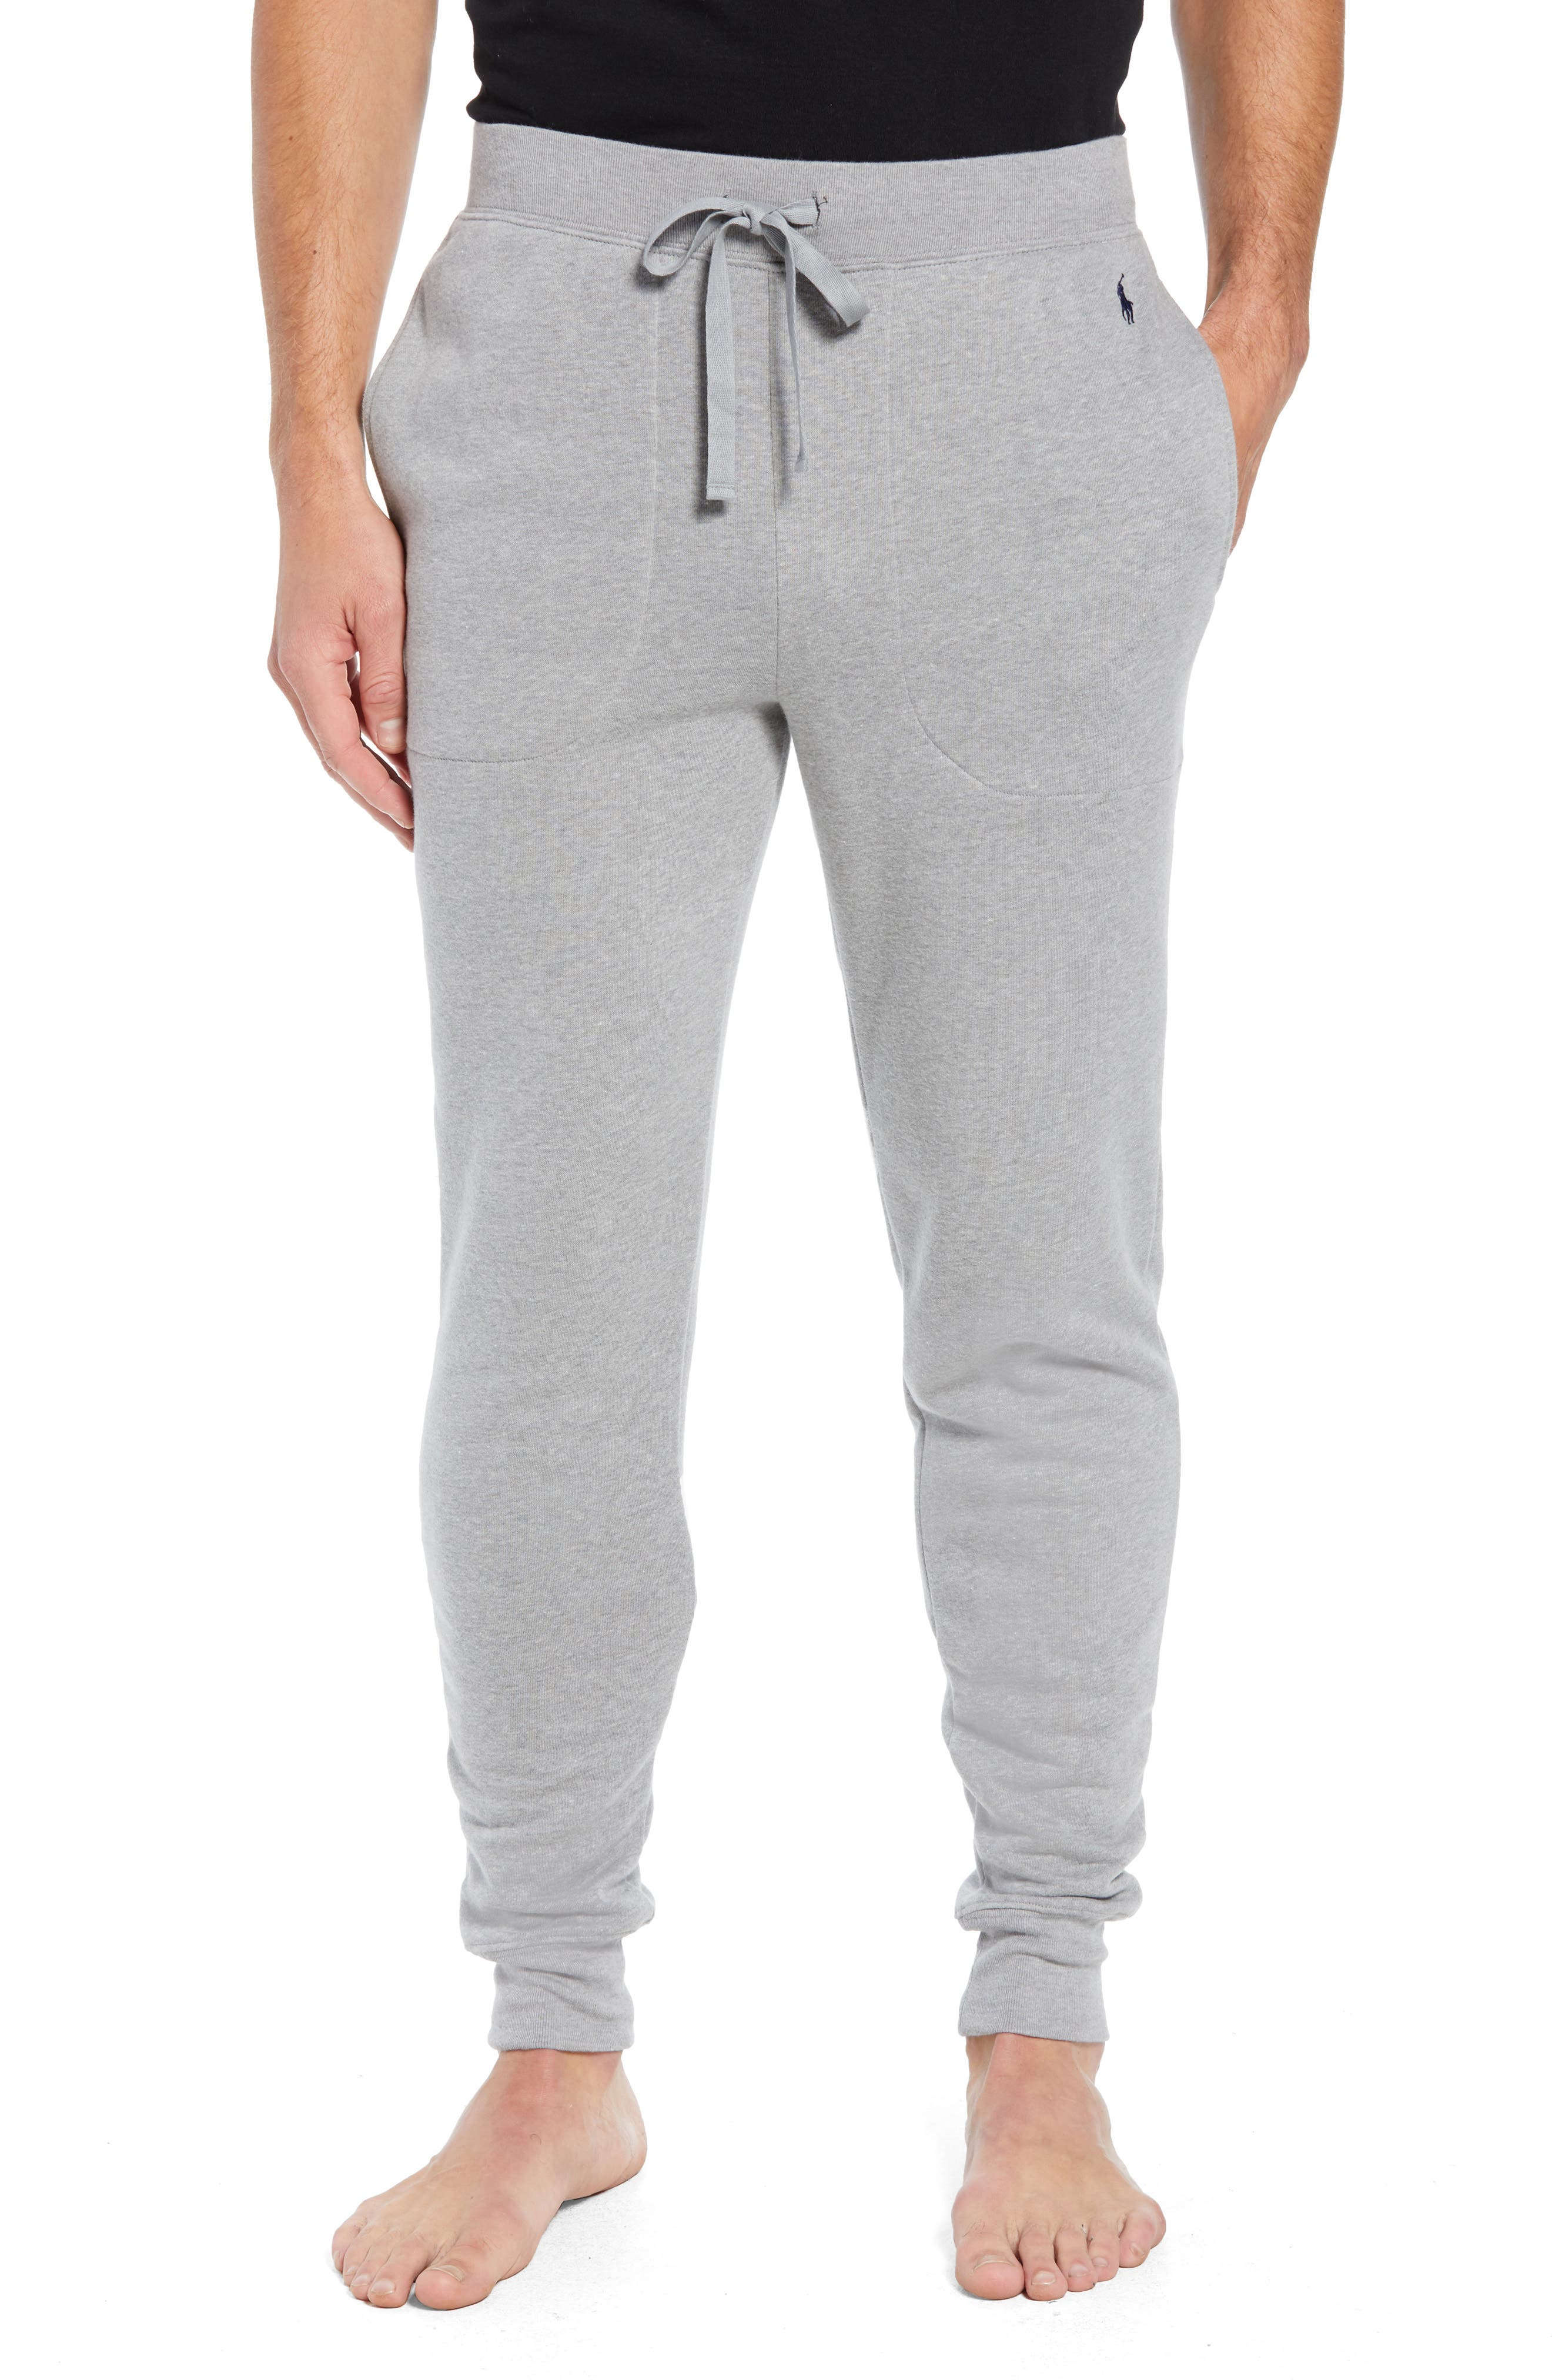 Brushed Jersey Cotton Blend Jogger Pants,                         Main,                         color, ANDOVER HEATHER GREY